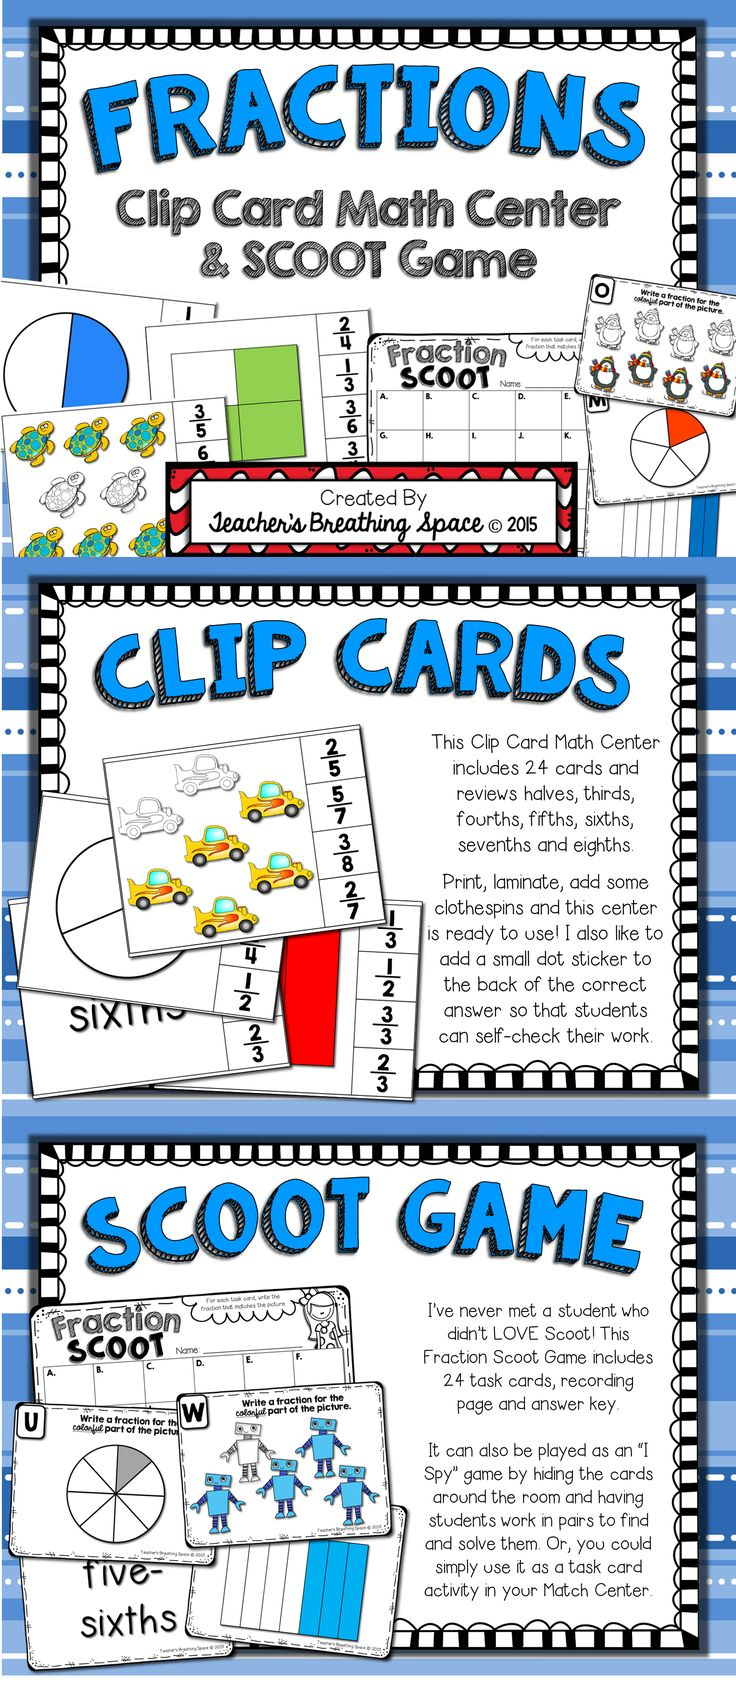 fractions fractions clip cards math center fractions scoot math activities and awesome. Black Bedroom Furniture Sets. Home Design Ideas